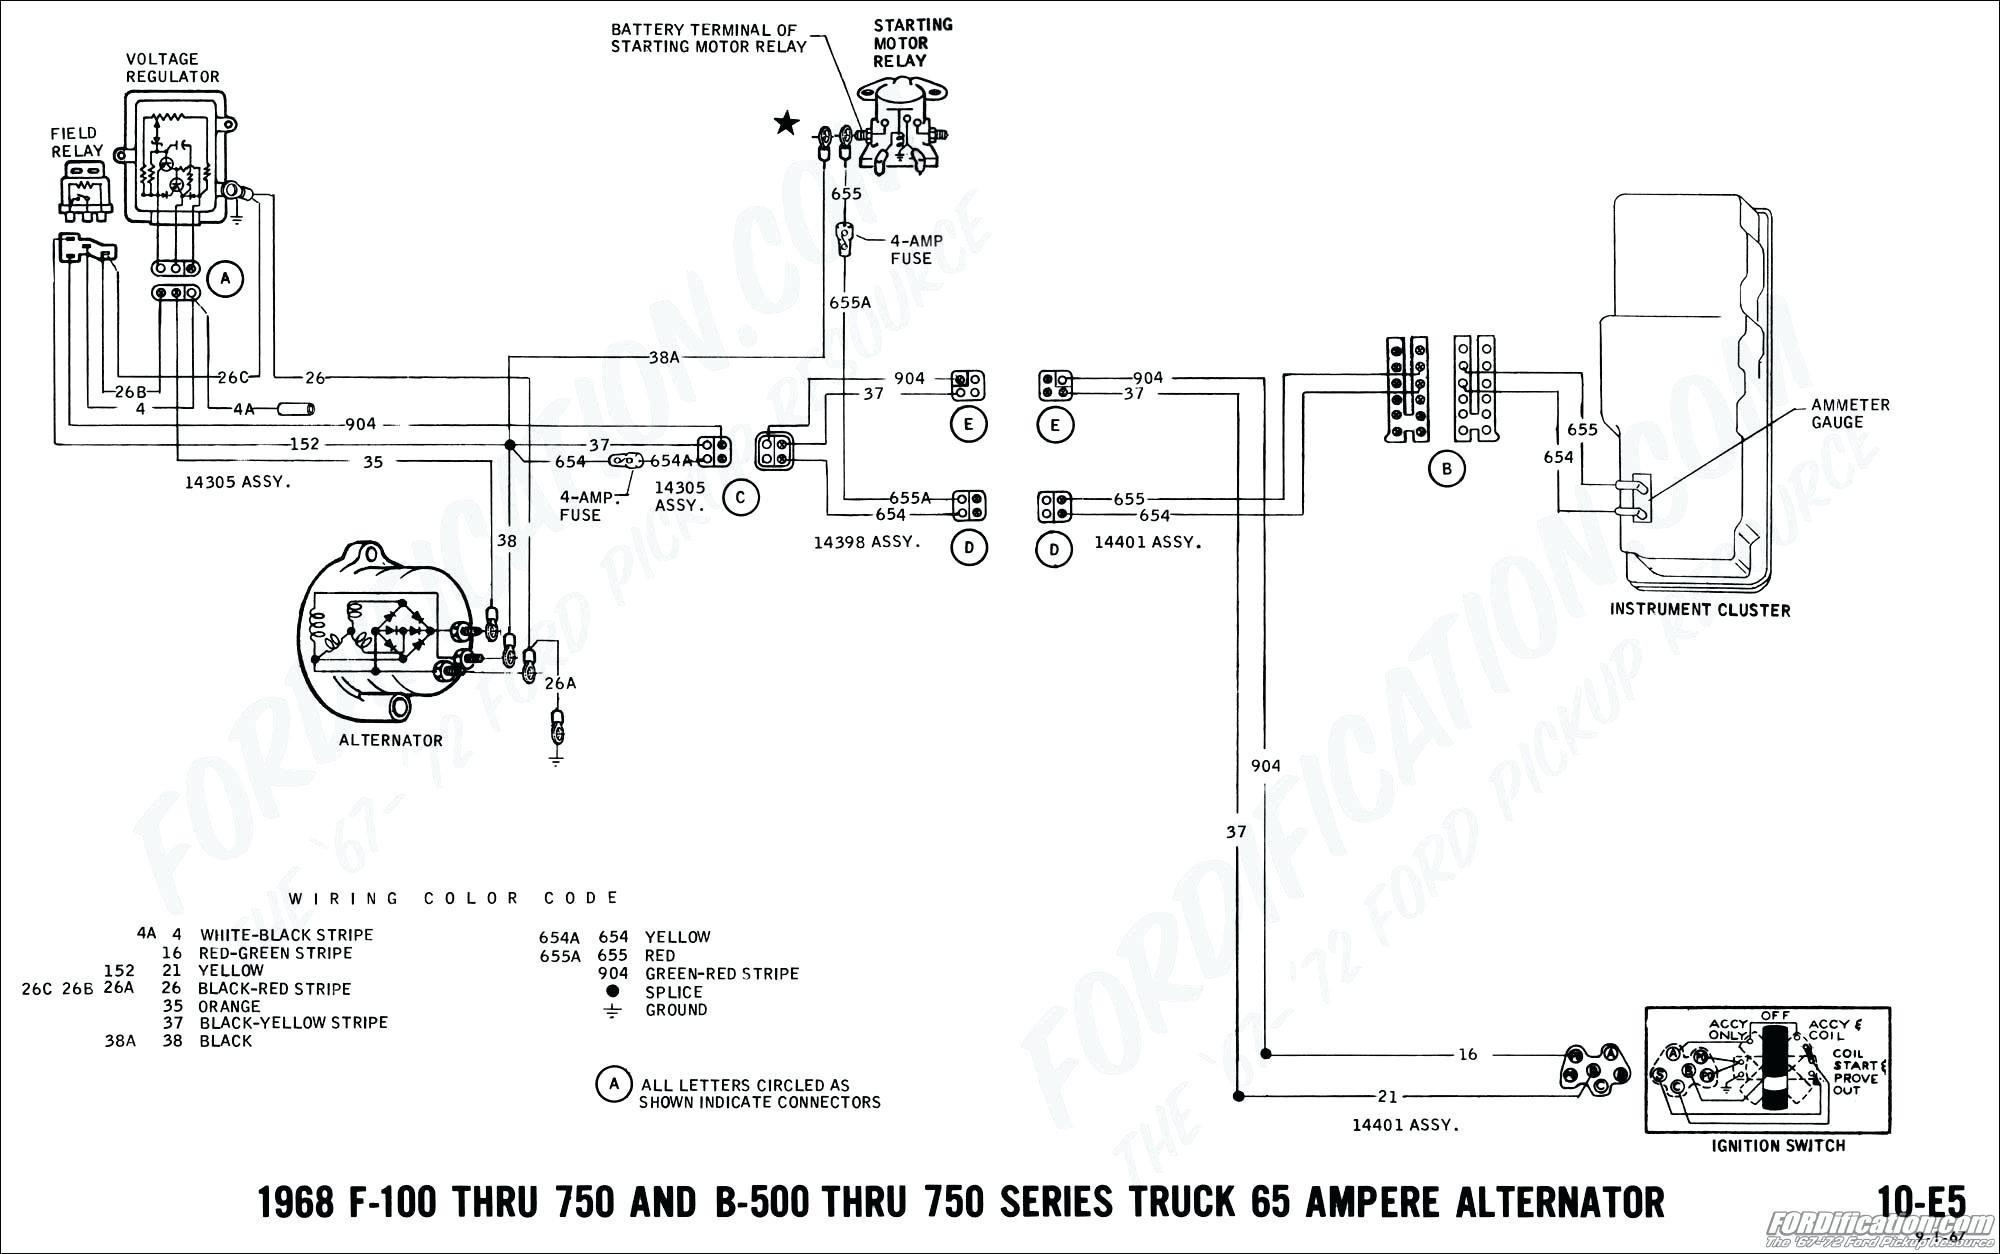 2002 Mustang Fuse Panel Diagram Electrical Schematics 02 F250 2003 Ford Co Box Smart Wiring Diagrams U2022 2001 V6